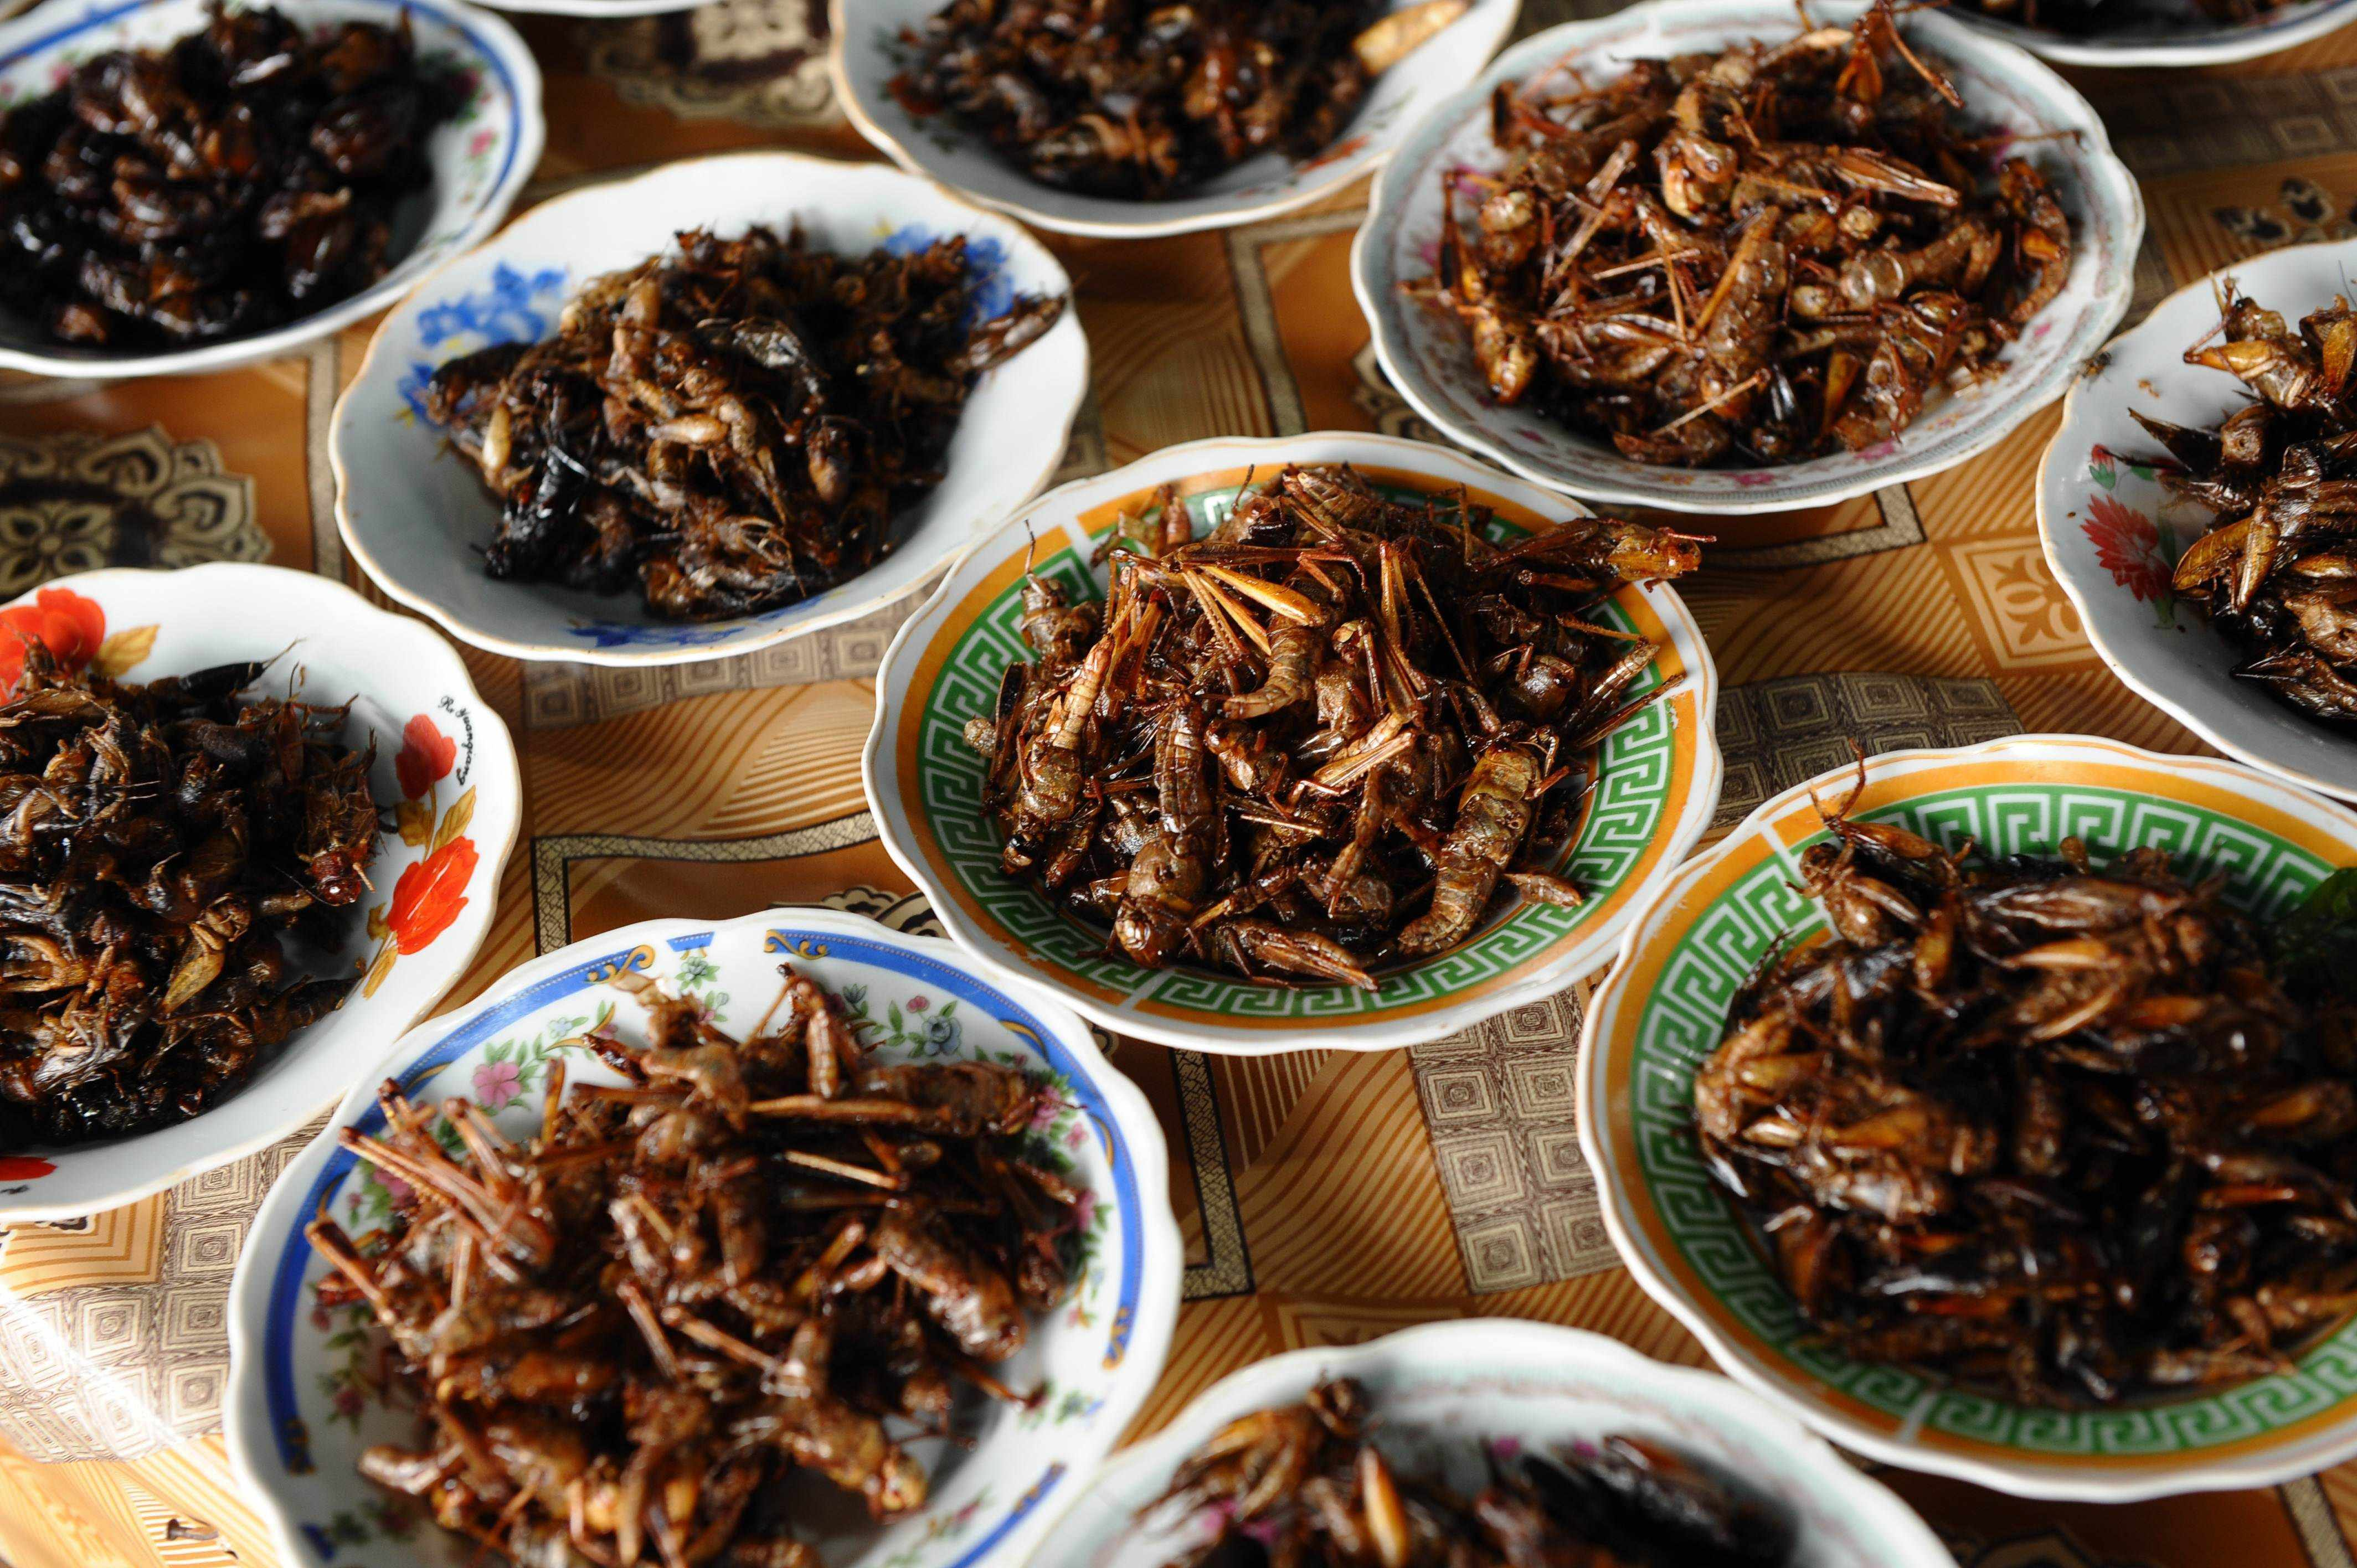 This picture taken on March 15, 2011 shows plates of fried insects, including crickets and grasshoppers, for sale at a local market in Vientiane.      AFP PHOTO / HOANG DINH Nam        (Photo credit should read HOANG DINH NAM/AFP/Getty Images)